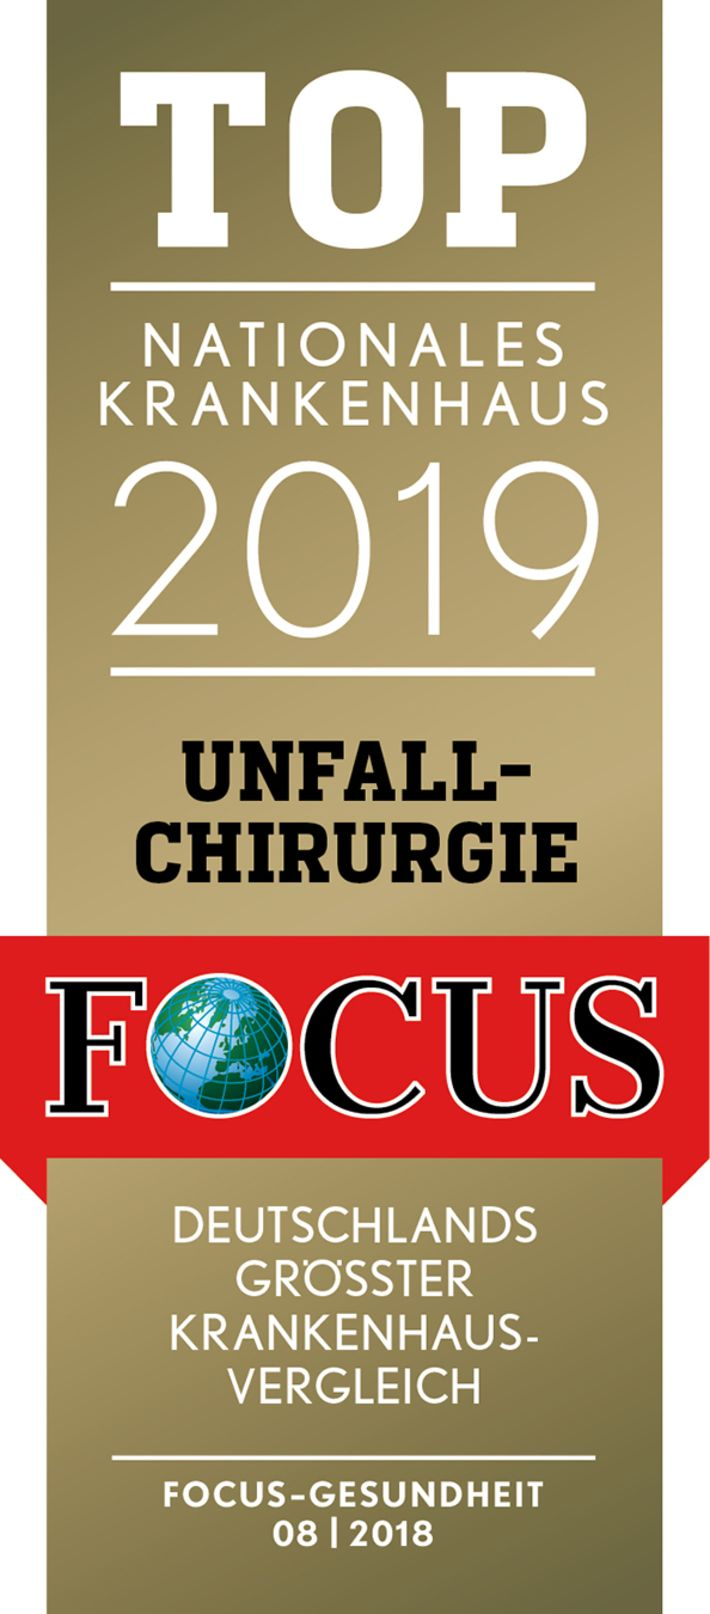 FOCUS - TOP Nationales Krankenhaus 2019 - Unfallchirurgie